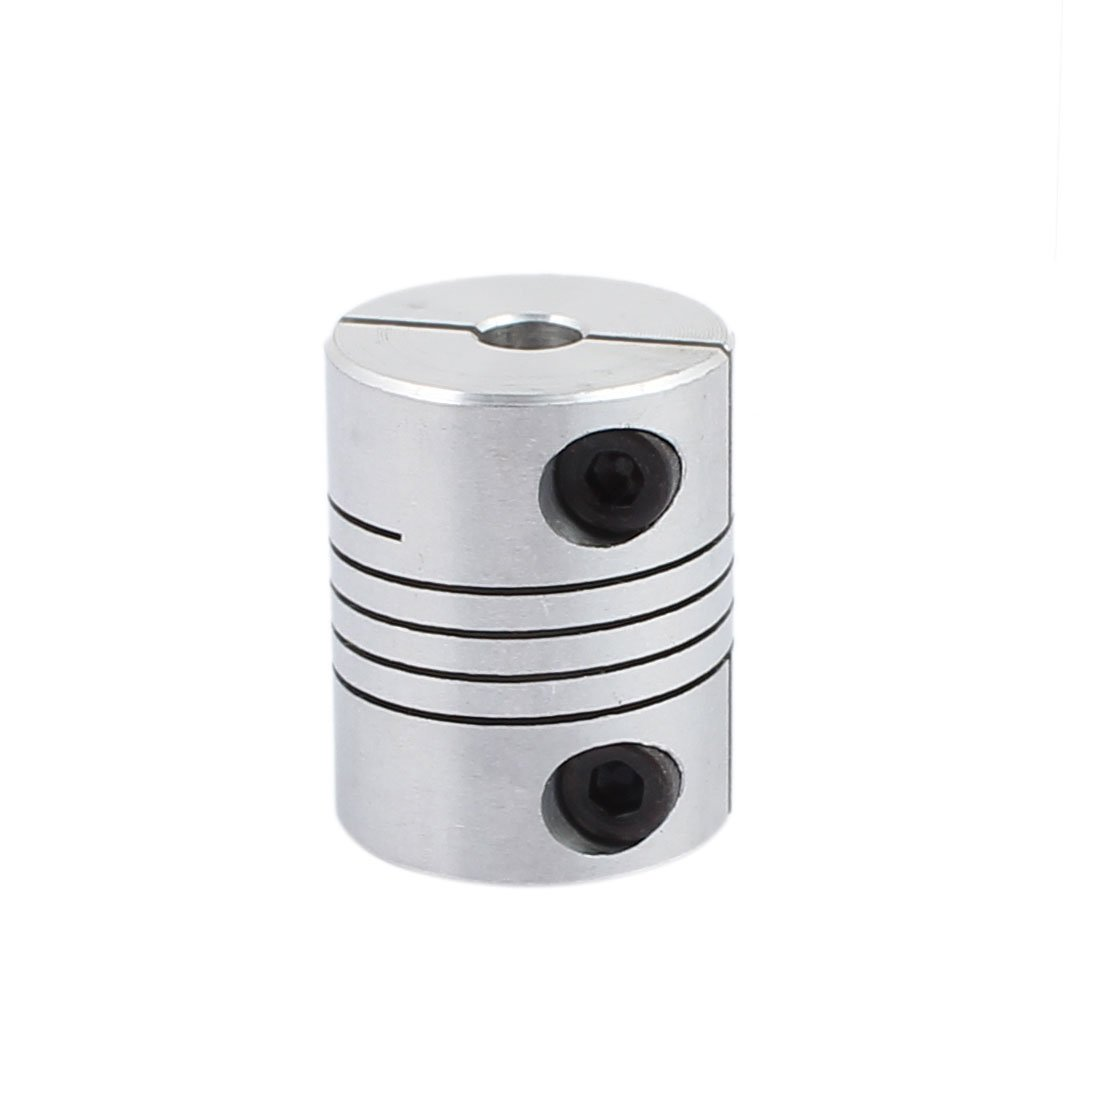 sourcingmap 14mm to 12mm Shaft Coupling 40mm Length 32mm Diameter Stepper Motor Coupler Aluminum Alloy Joint Connector for 3D Printer CNC Machine DIY Encoder a16121900ux0397